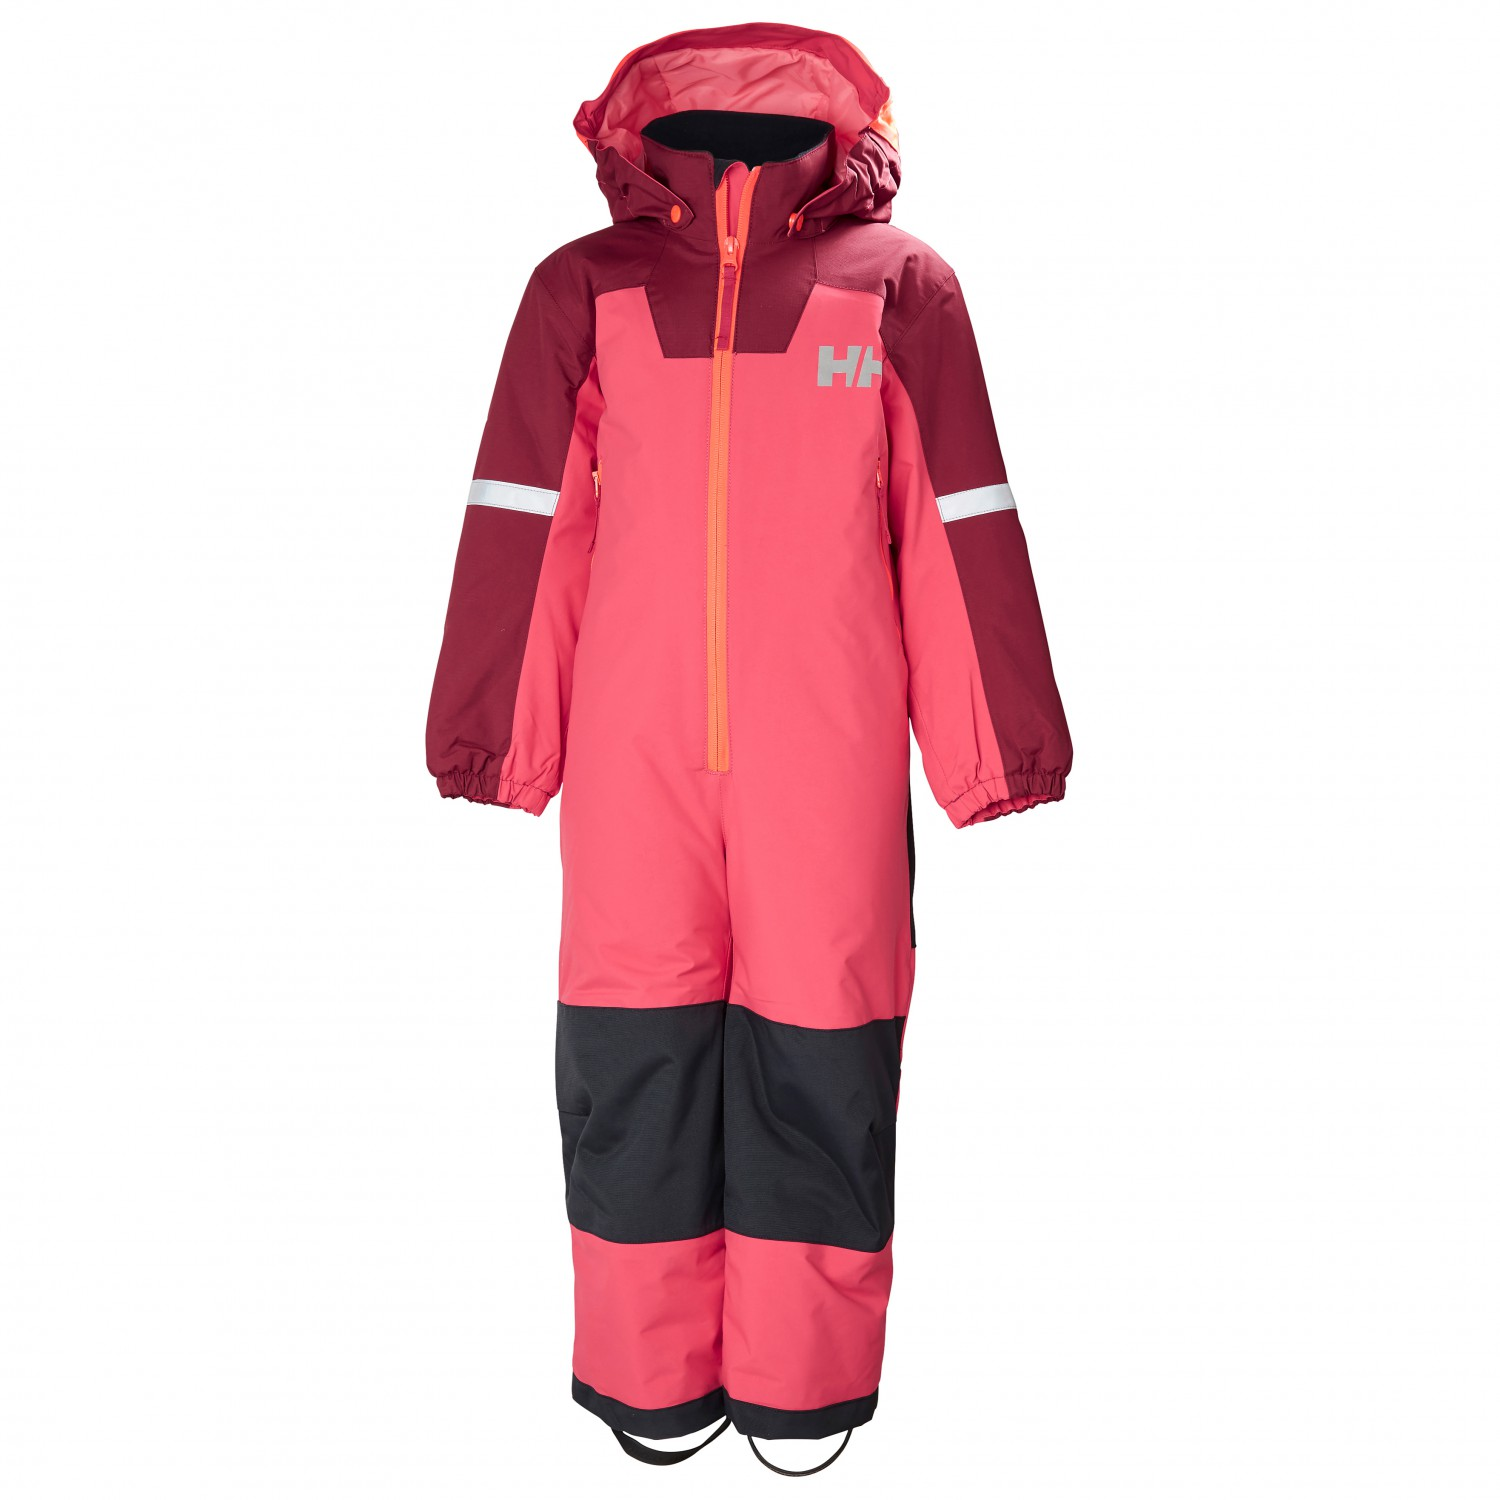 90d33e58 Helly Hansen Legend Insulated Suit - Overall Kids | Free EU Delivery ...